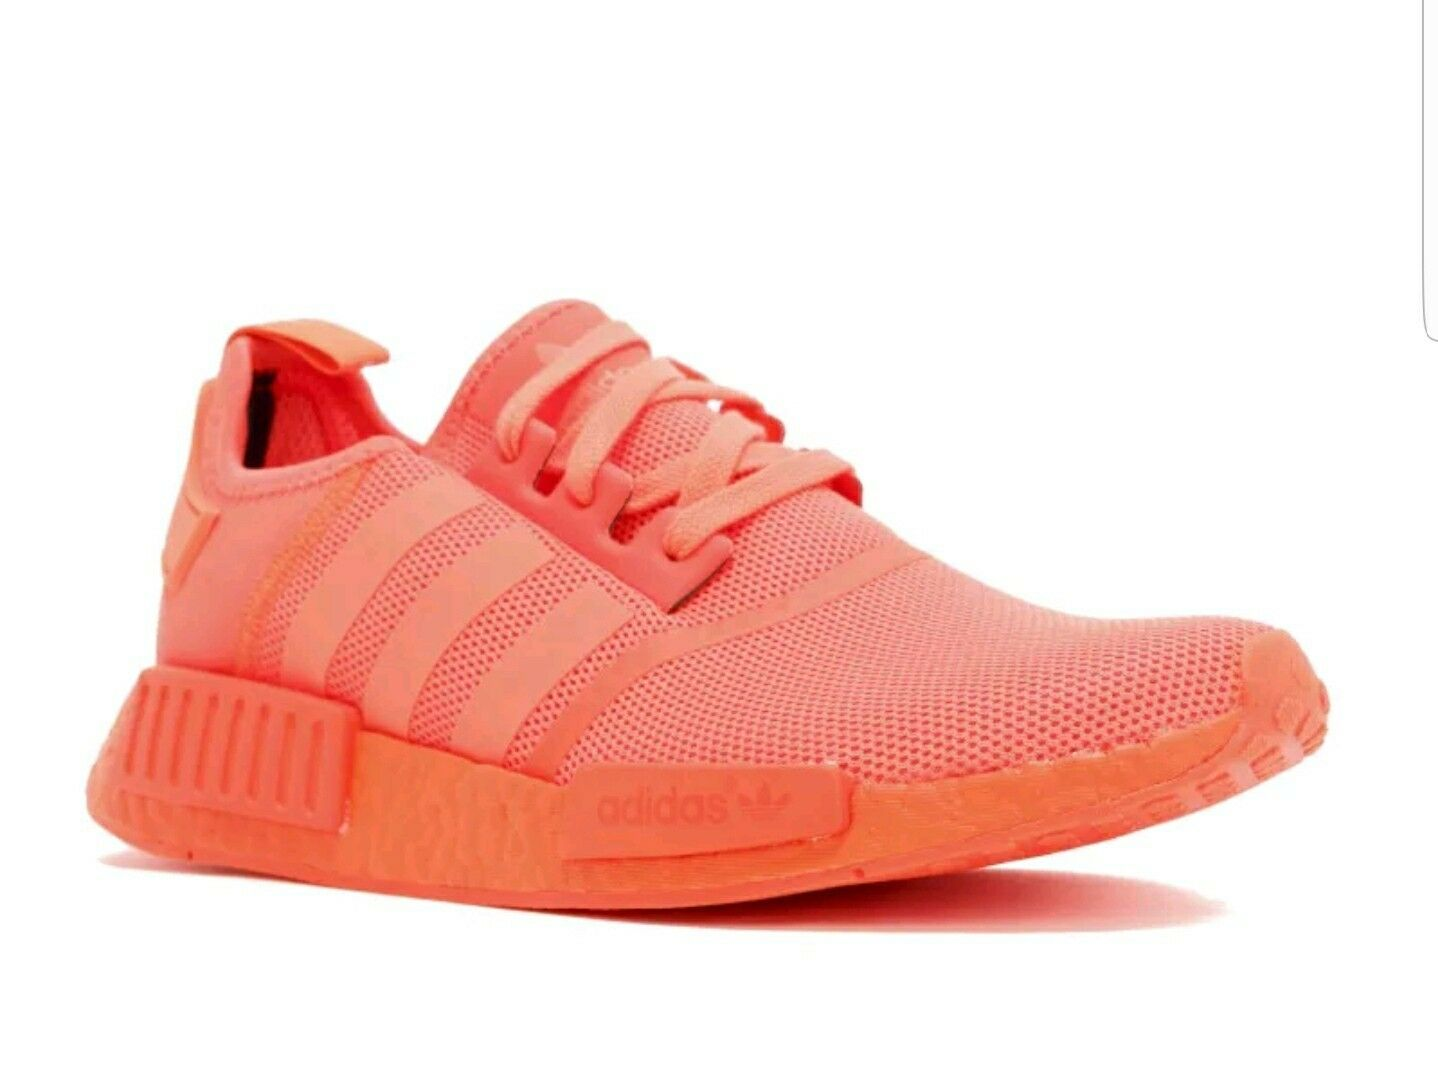 44d11c7fbe6ea ... spain adidas nmd r1 triple solar red boost s31507 men size 9.5 4d6e4  eb5ca coupon code adidas dame ...